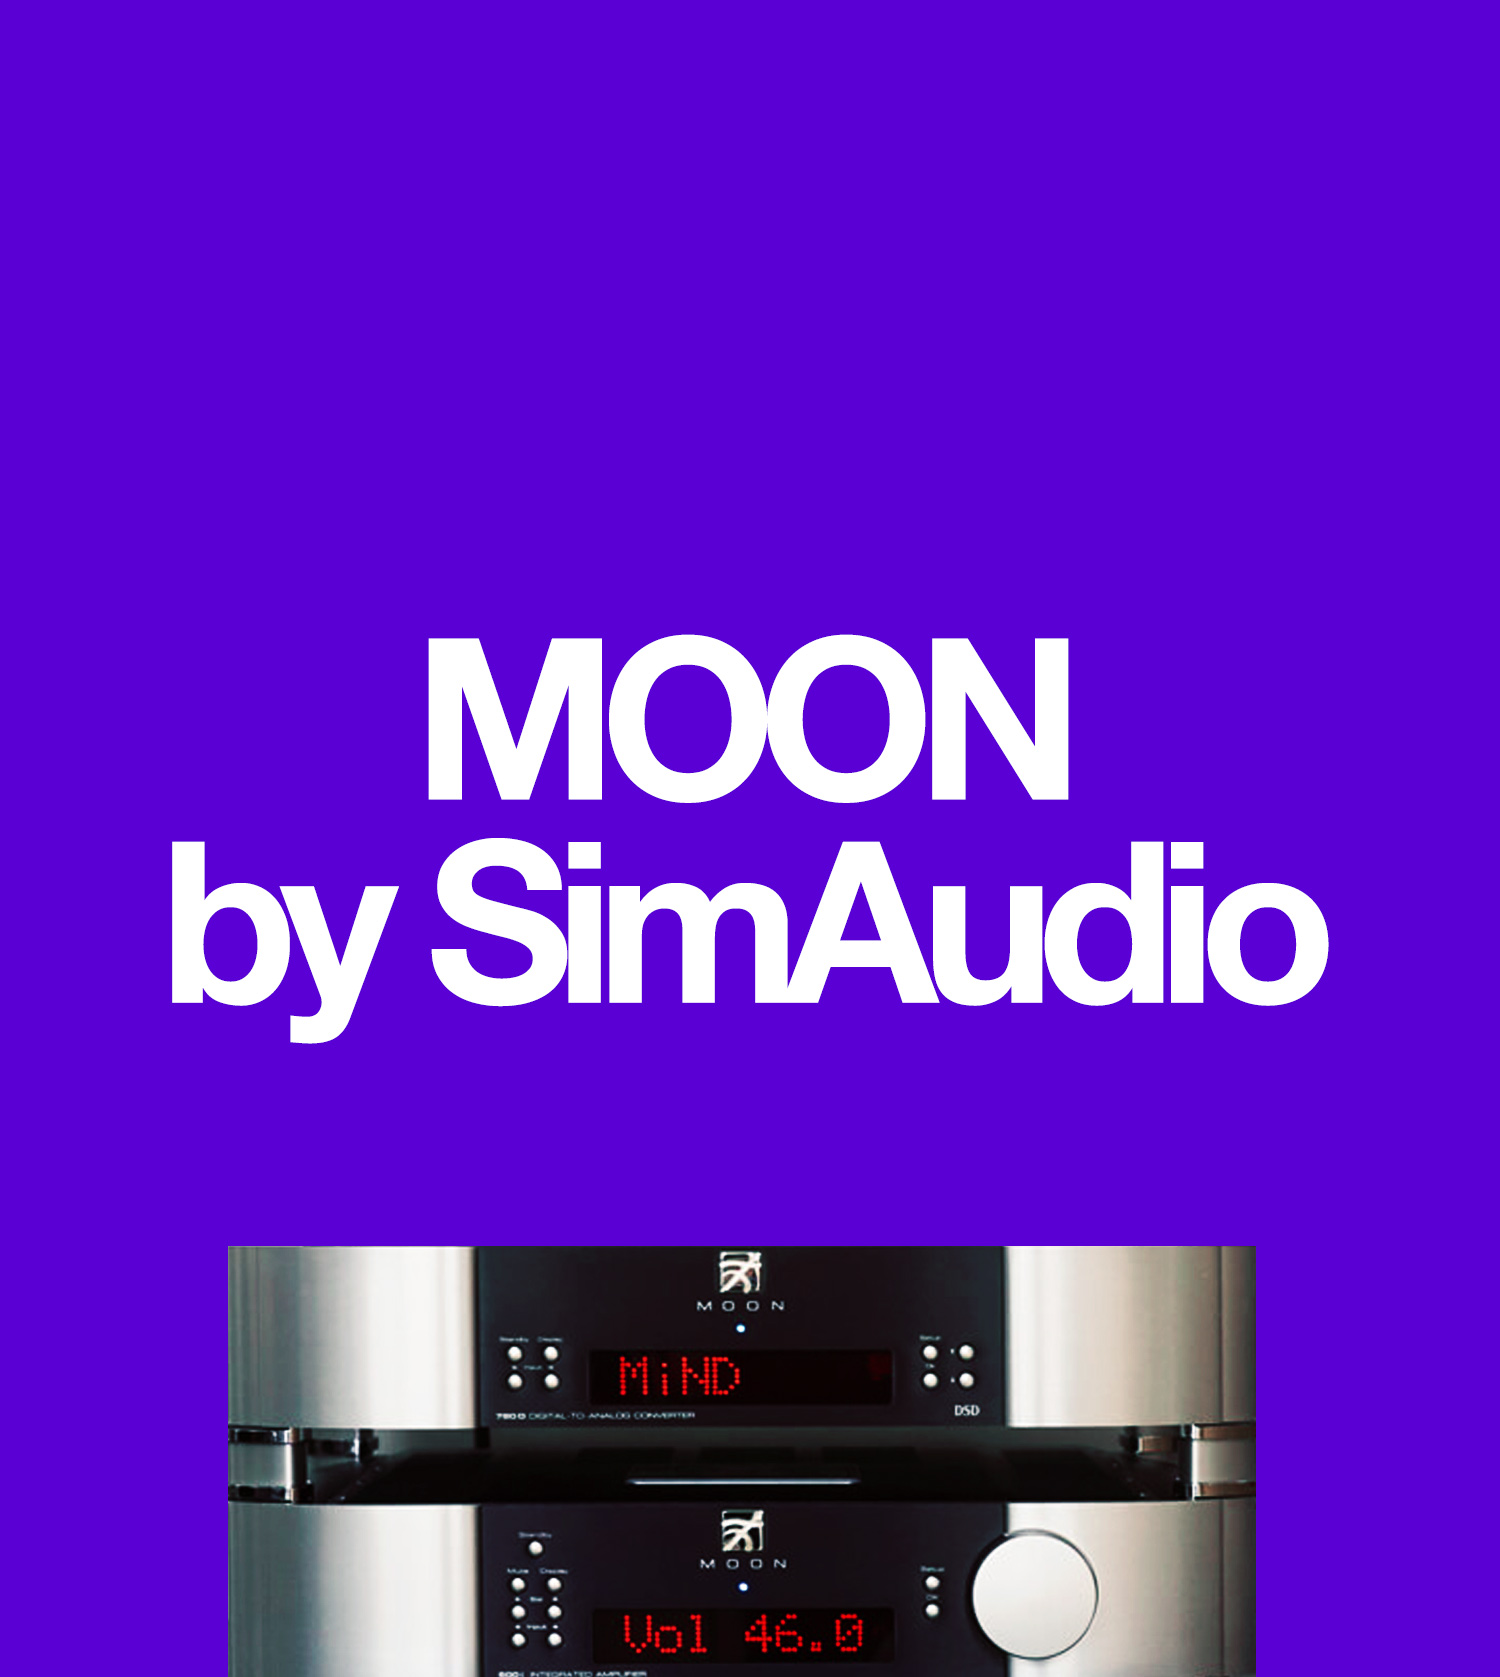 MOON by SimAudio, Hi-Fi